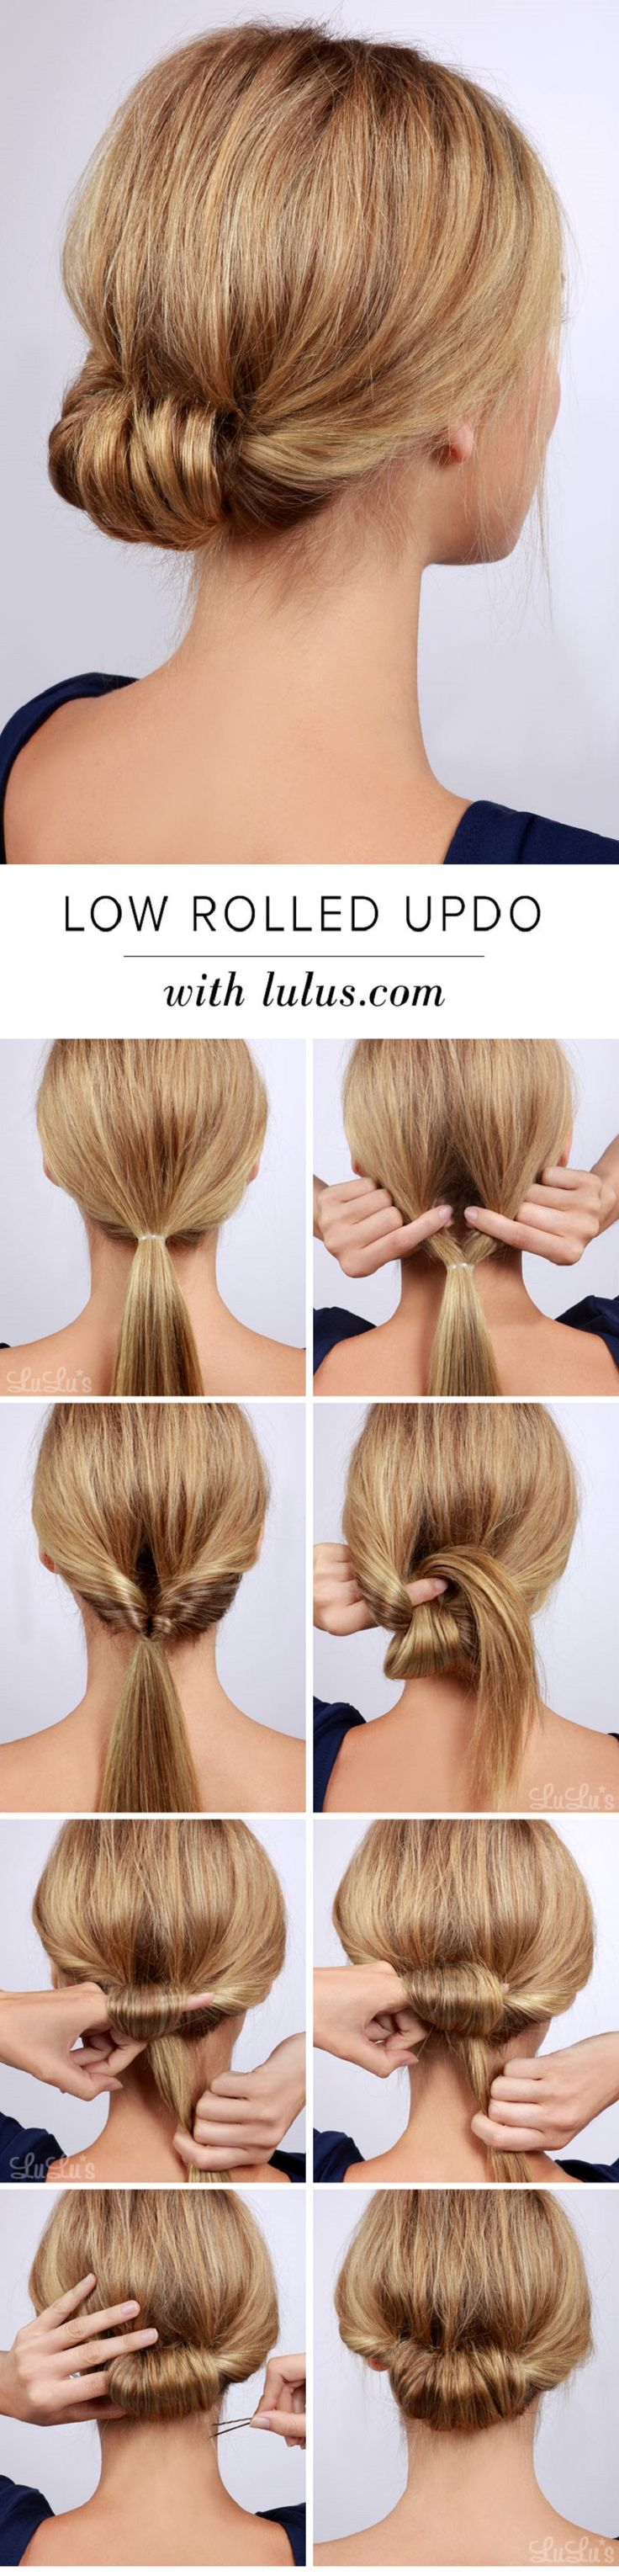 Low Rolled Updo Hair Tutorial: